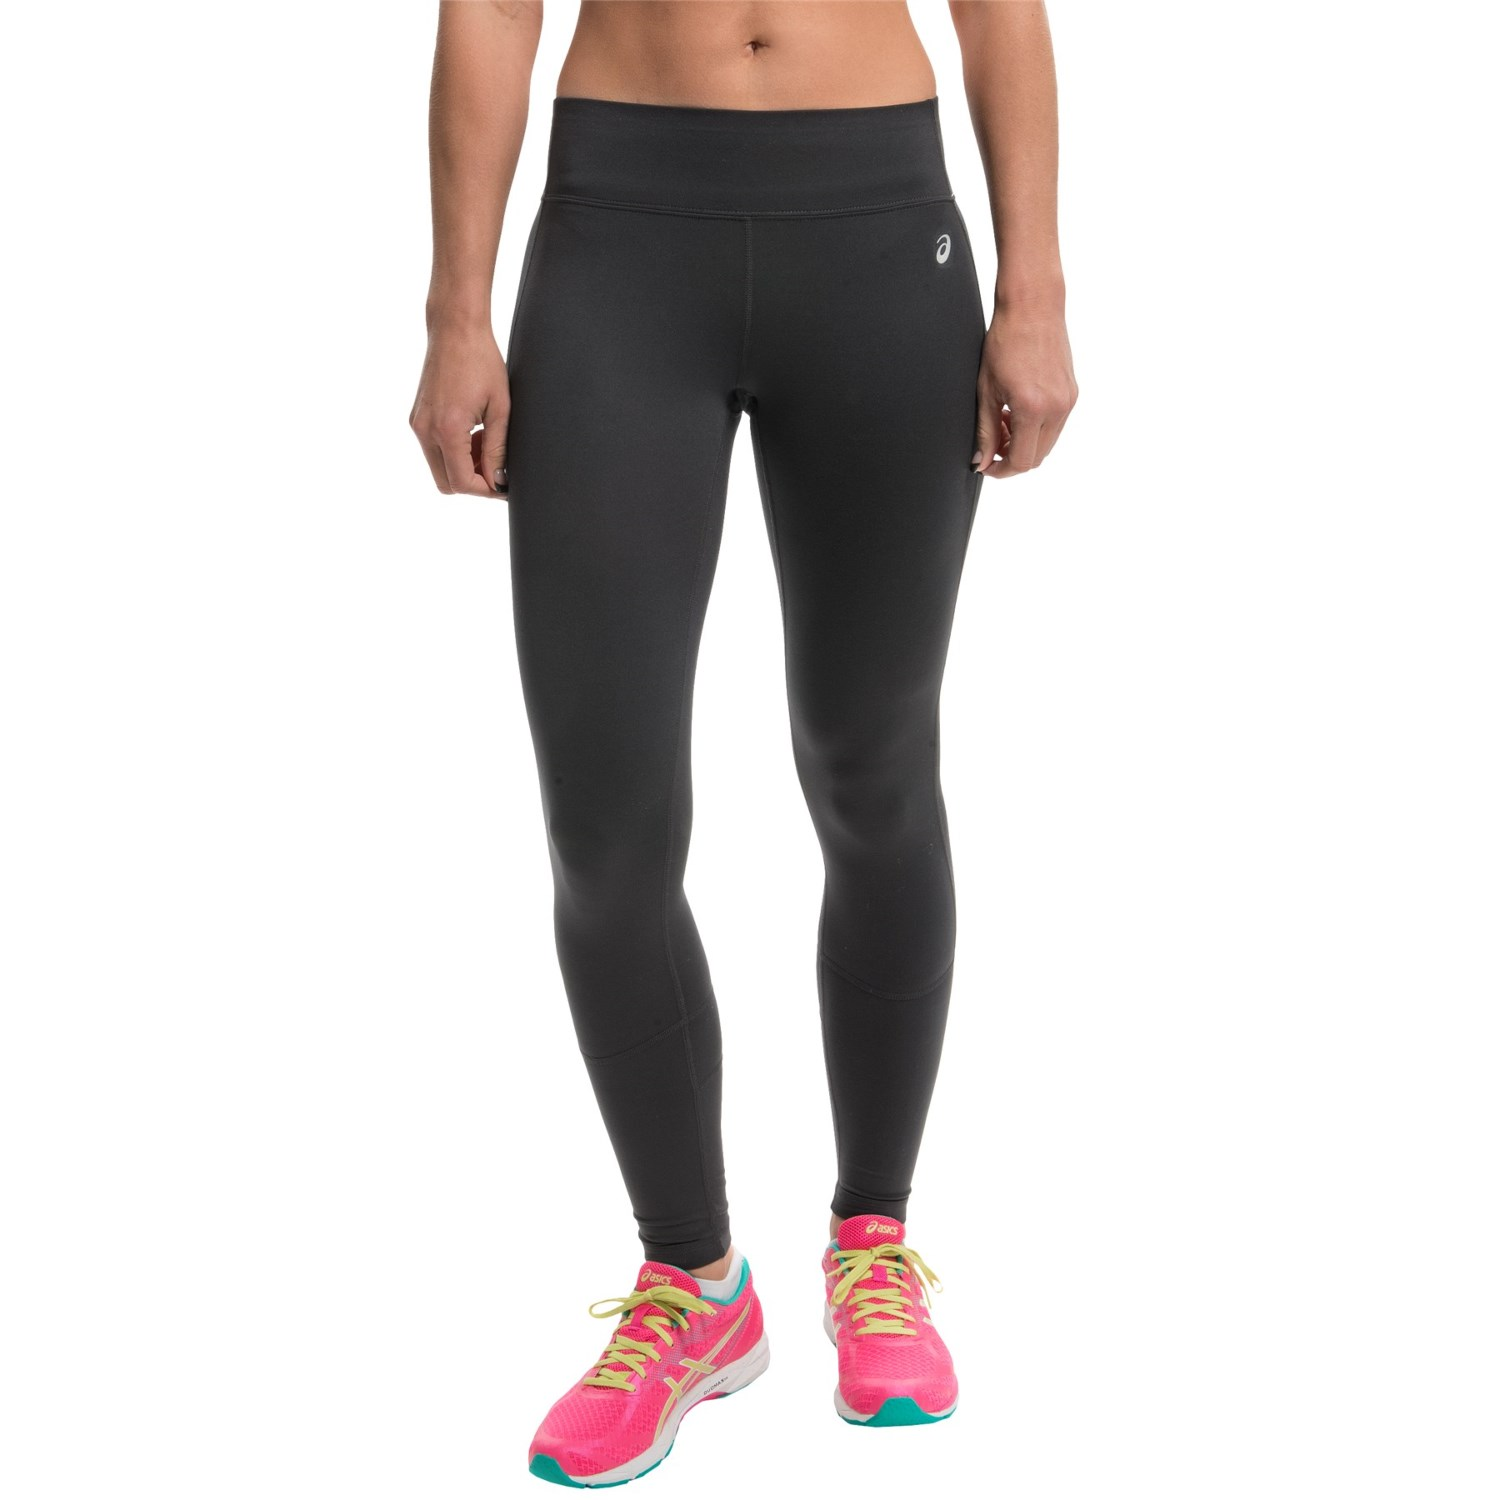 thermopolis black single women Find best value and selection for your mens asics thermopolis lt run pant black search on ebay world's leading marketplace.